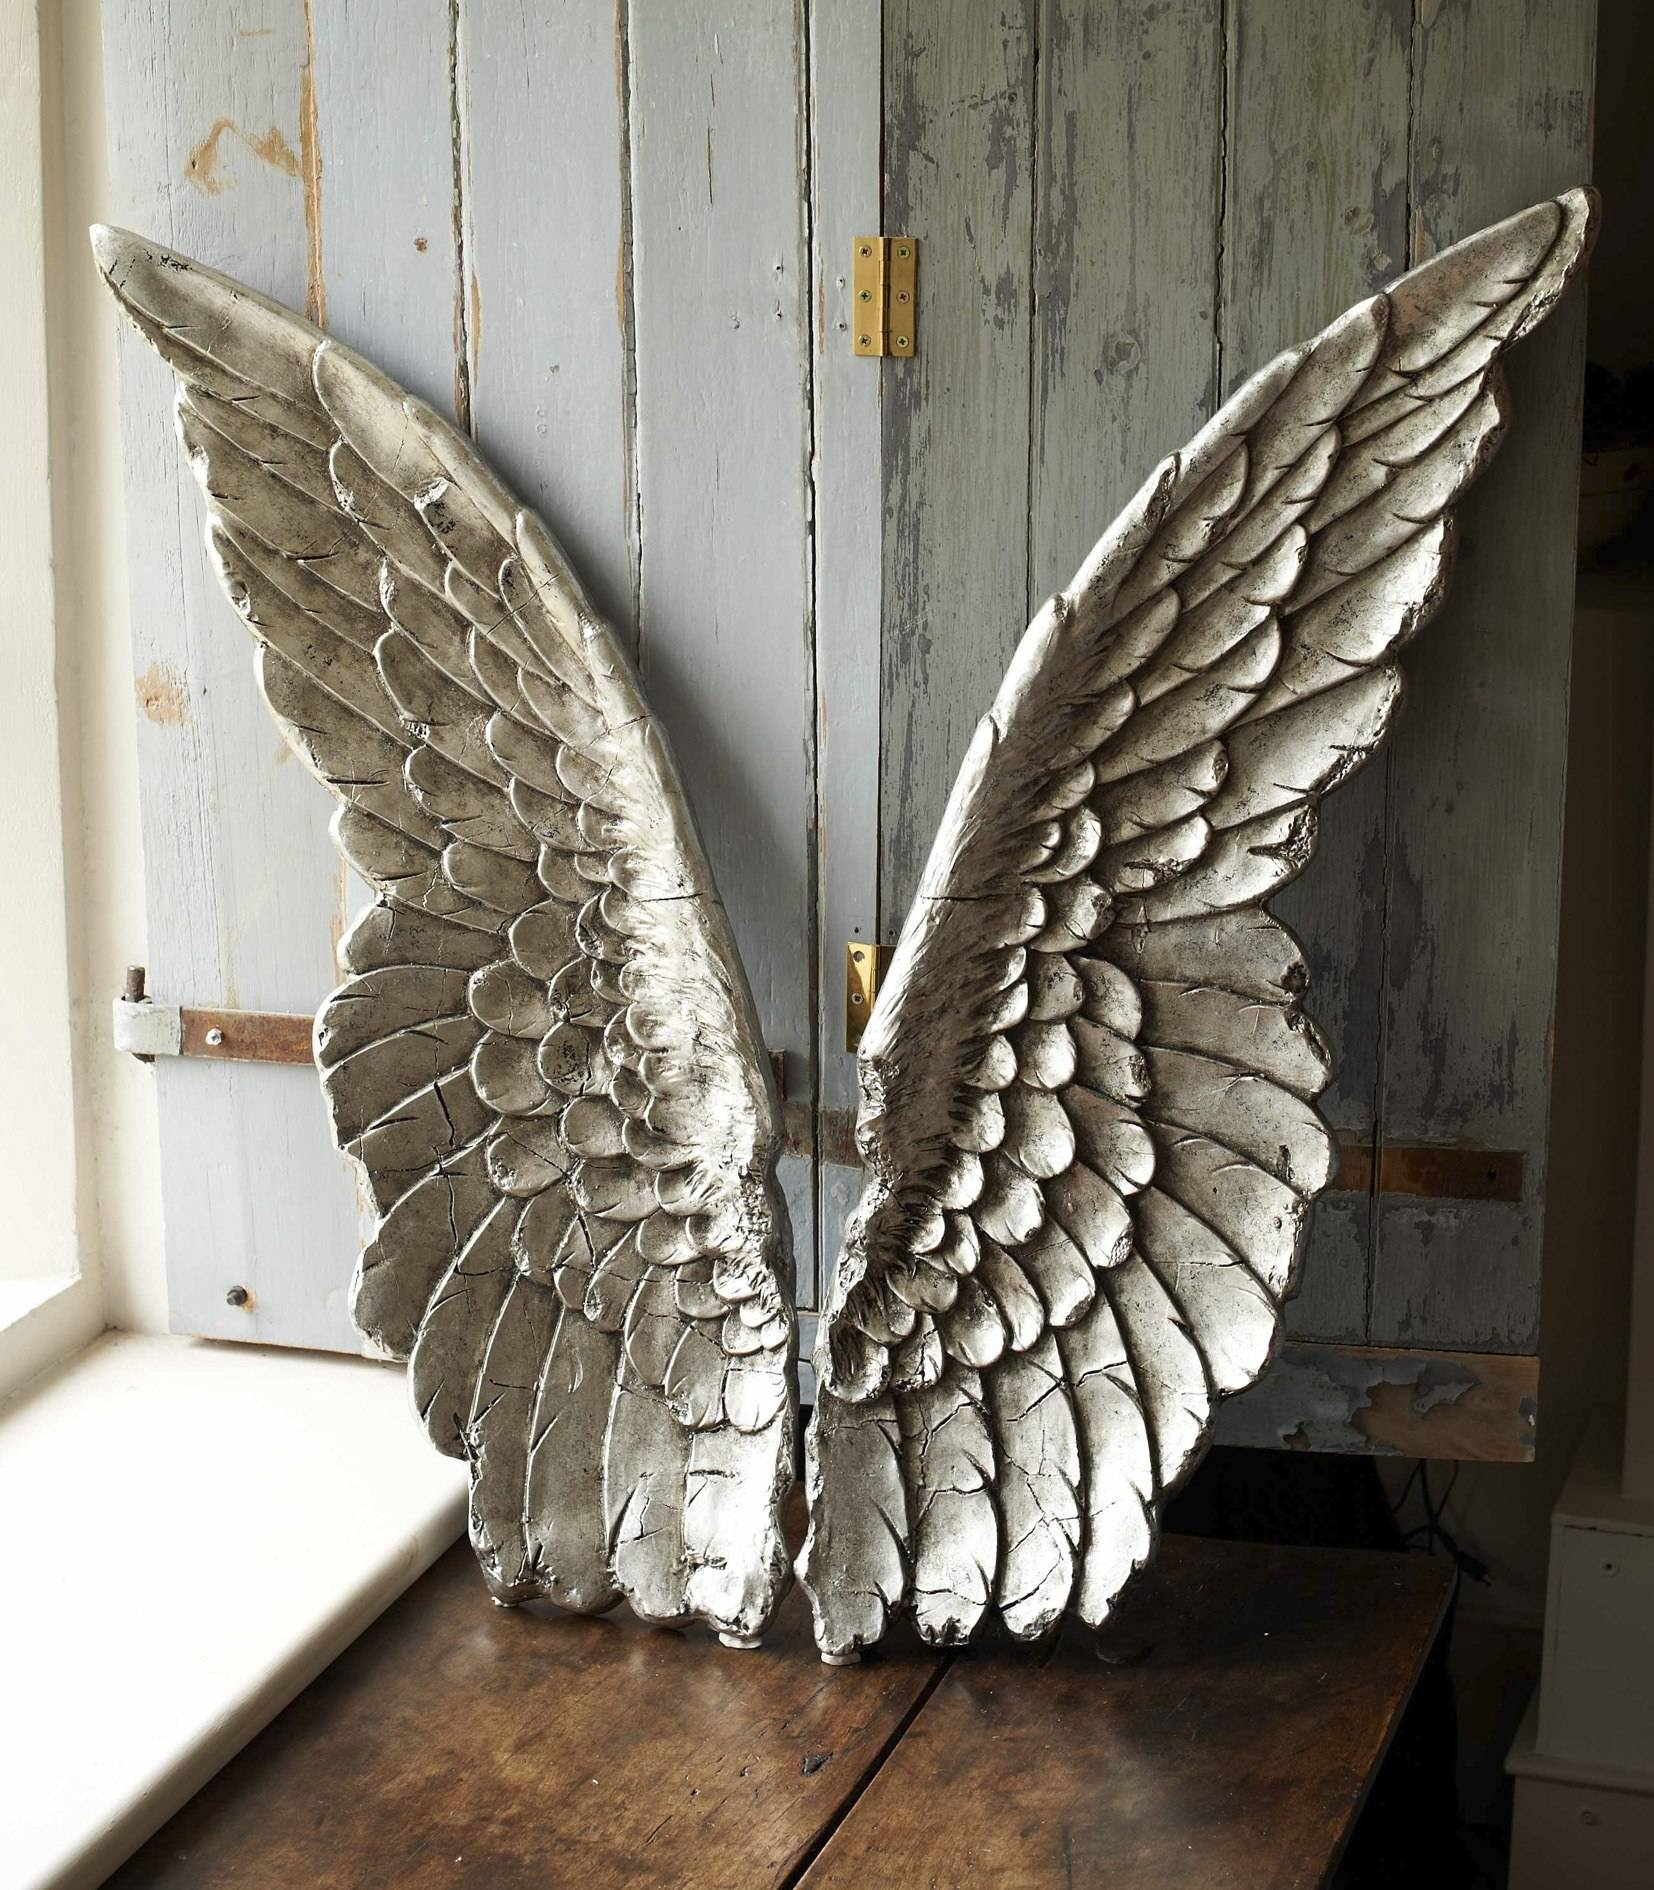 Best Angel Wings Wall Decor : Garnish With Angel Wings Wall Decor Regarding Most Up To Date Angel Wings Wall Art (View 11 of 20)